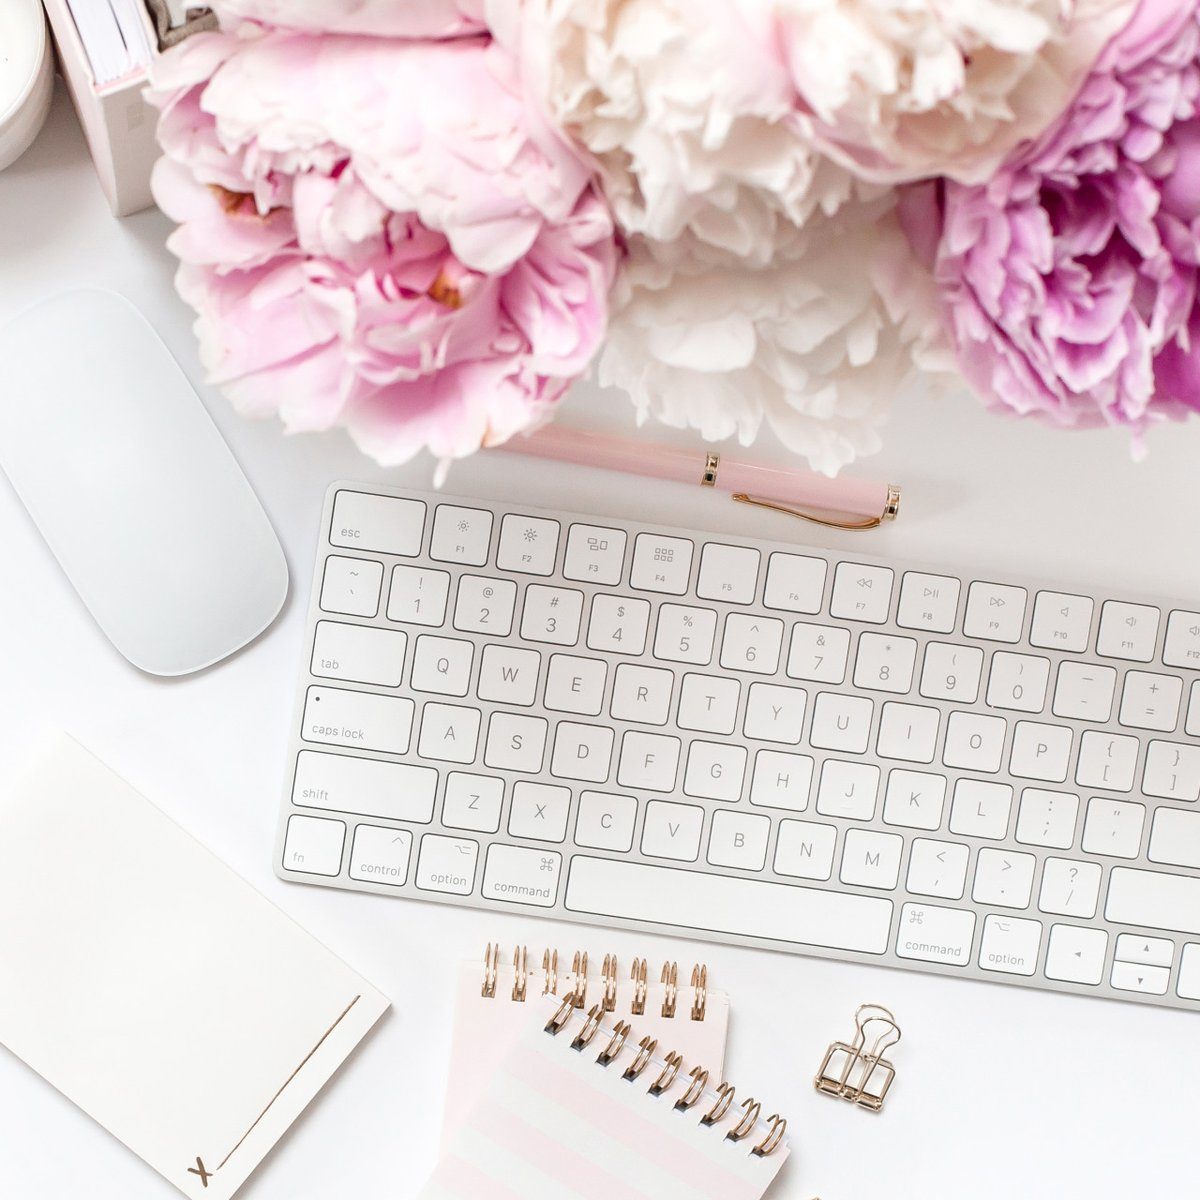 How to write fewer blog posts, but have a more successful blog >>> http://bit.ly/2WVKc2G  #blogging #bloggers #productivebloggingpic.twitter.com/9AnnA9qmQl